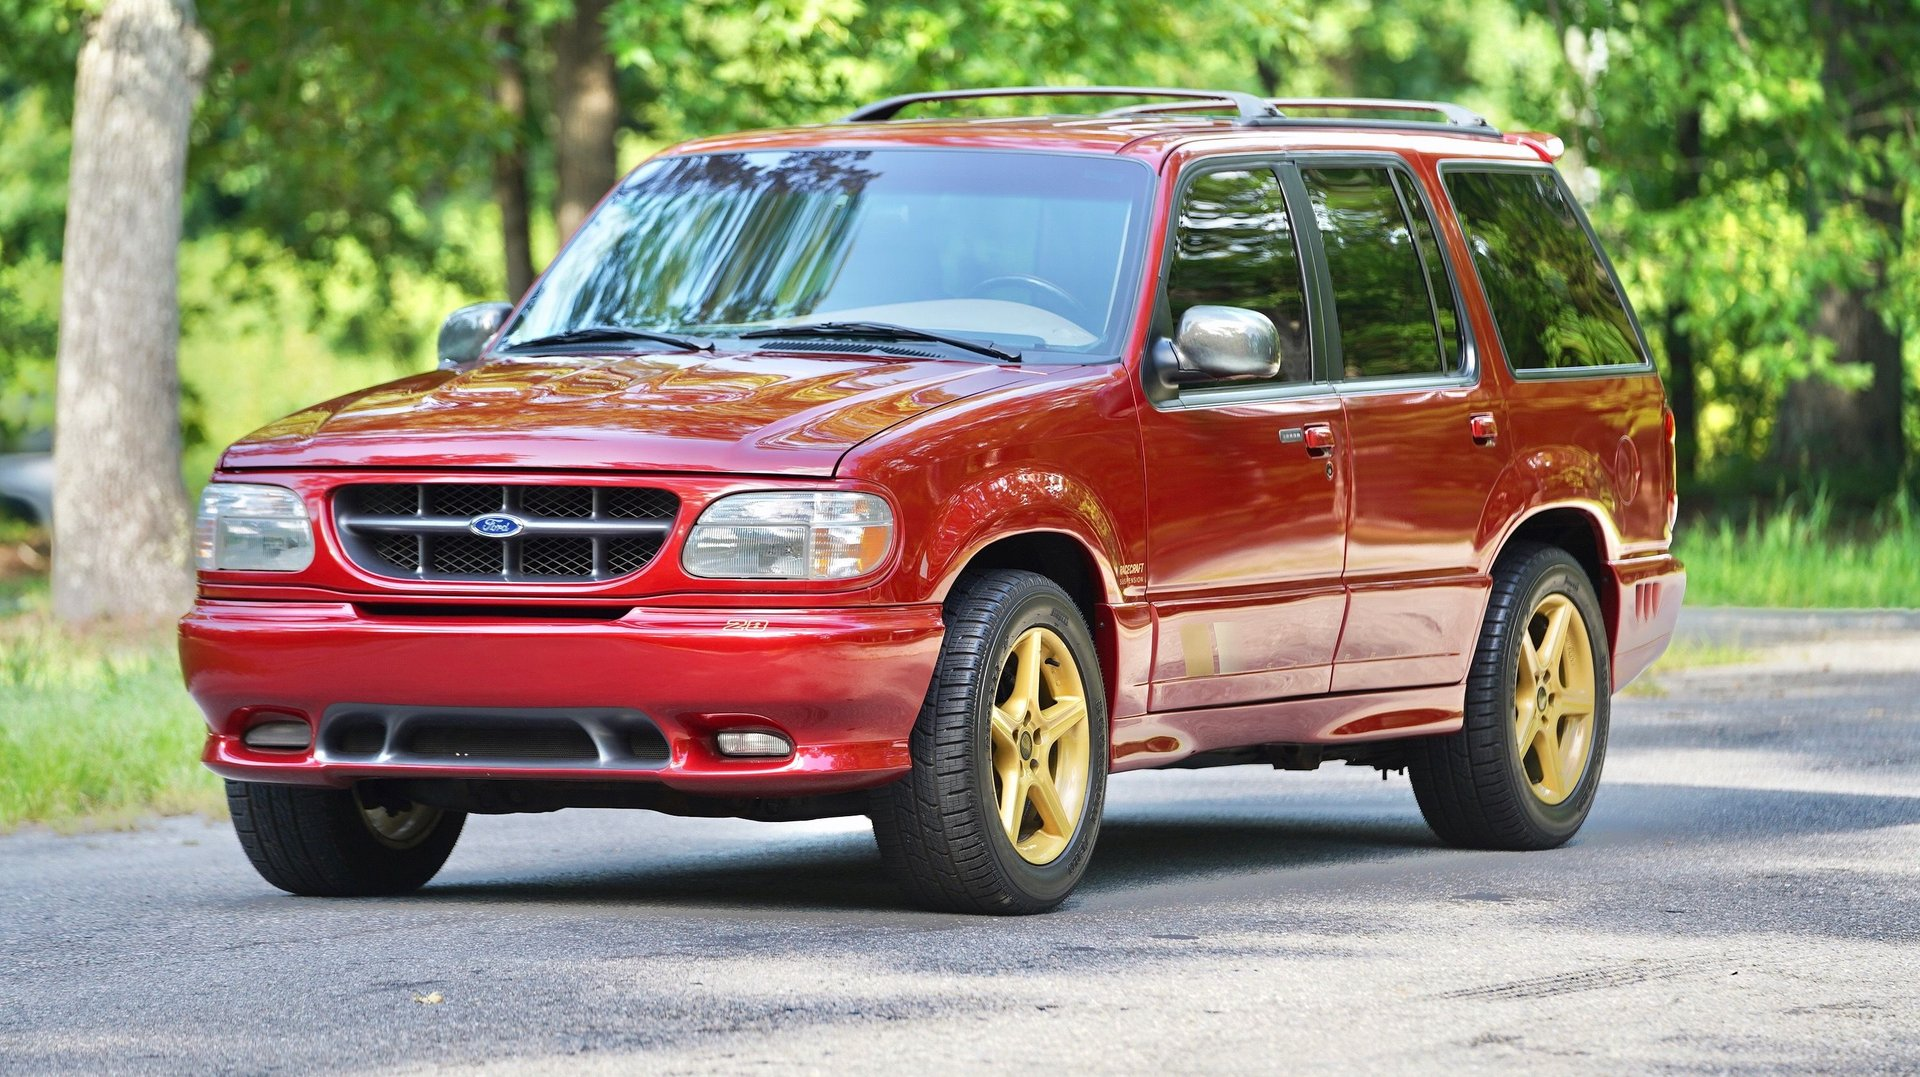 1998 ford explorer saleen xp8 supercharged